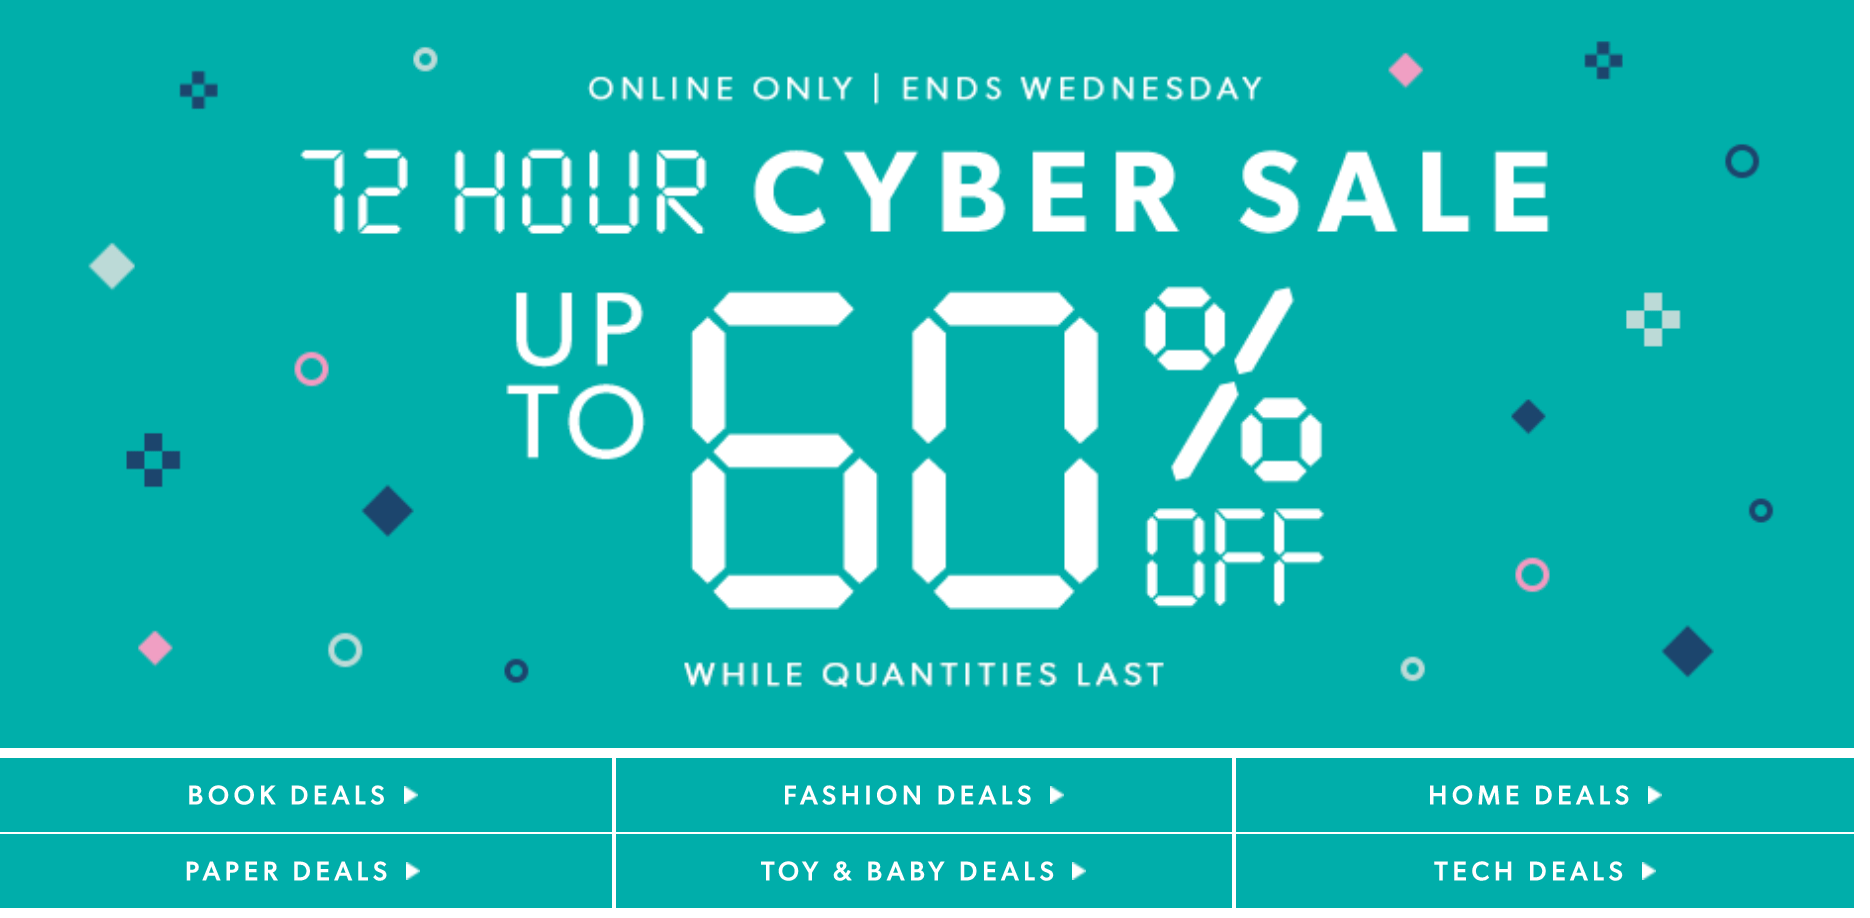 Indigo Canada Cyber Sale Up to 60% Off + 40% Off LEGO & Games + More